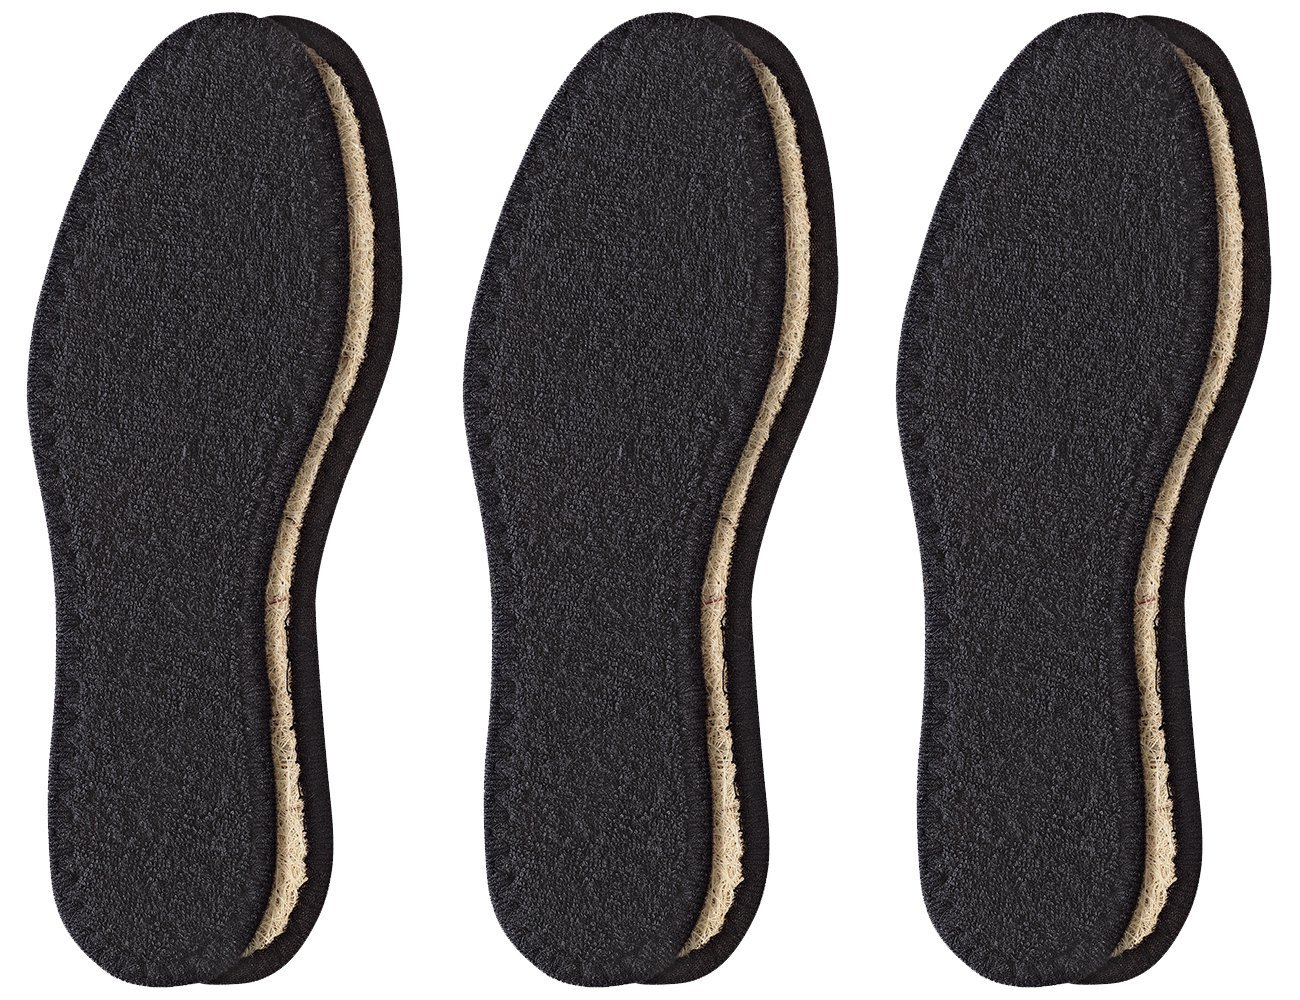 Pedag Washable Deo-Fresh Insoles with Natural Cotton Terry and Sisal Fibers for Men, US 15/EU 48, Black, 6.76 Ounce